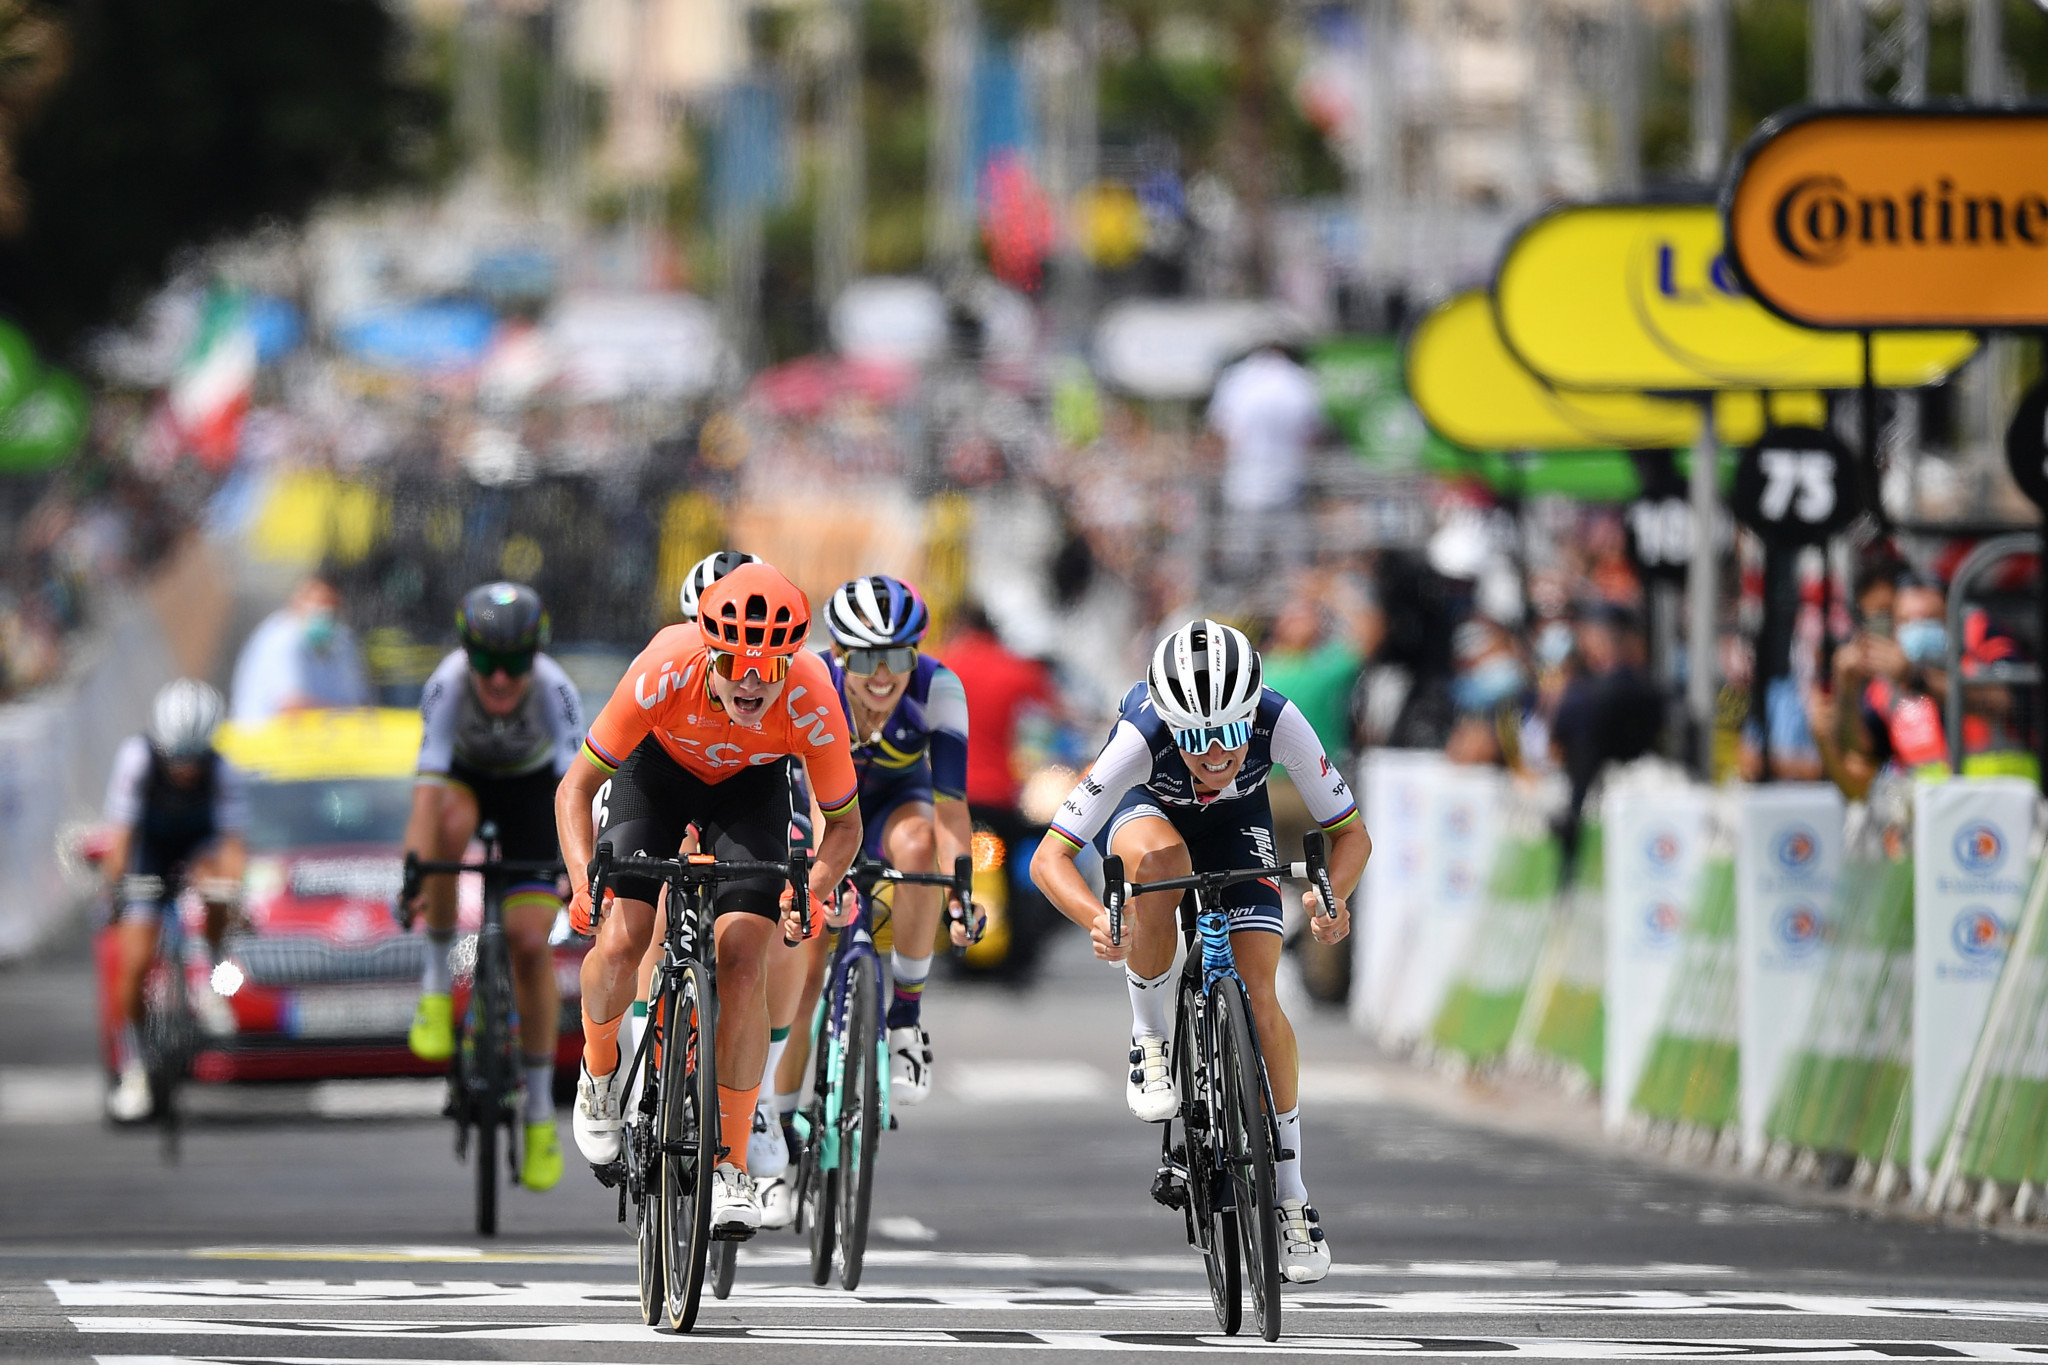 Eight-day women's Tour de France to launch in 2022 supported by Zwift